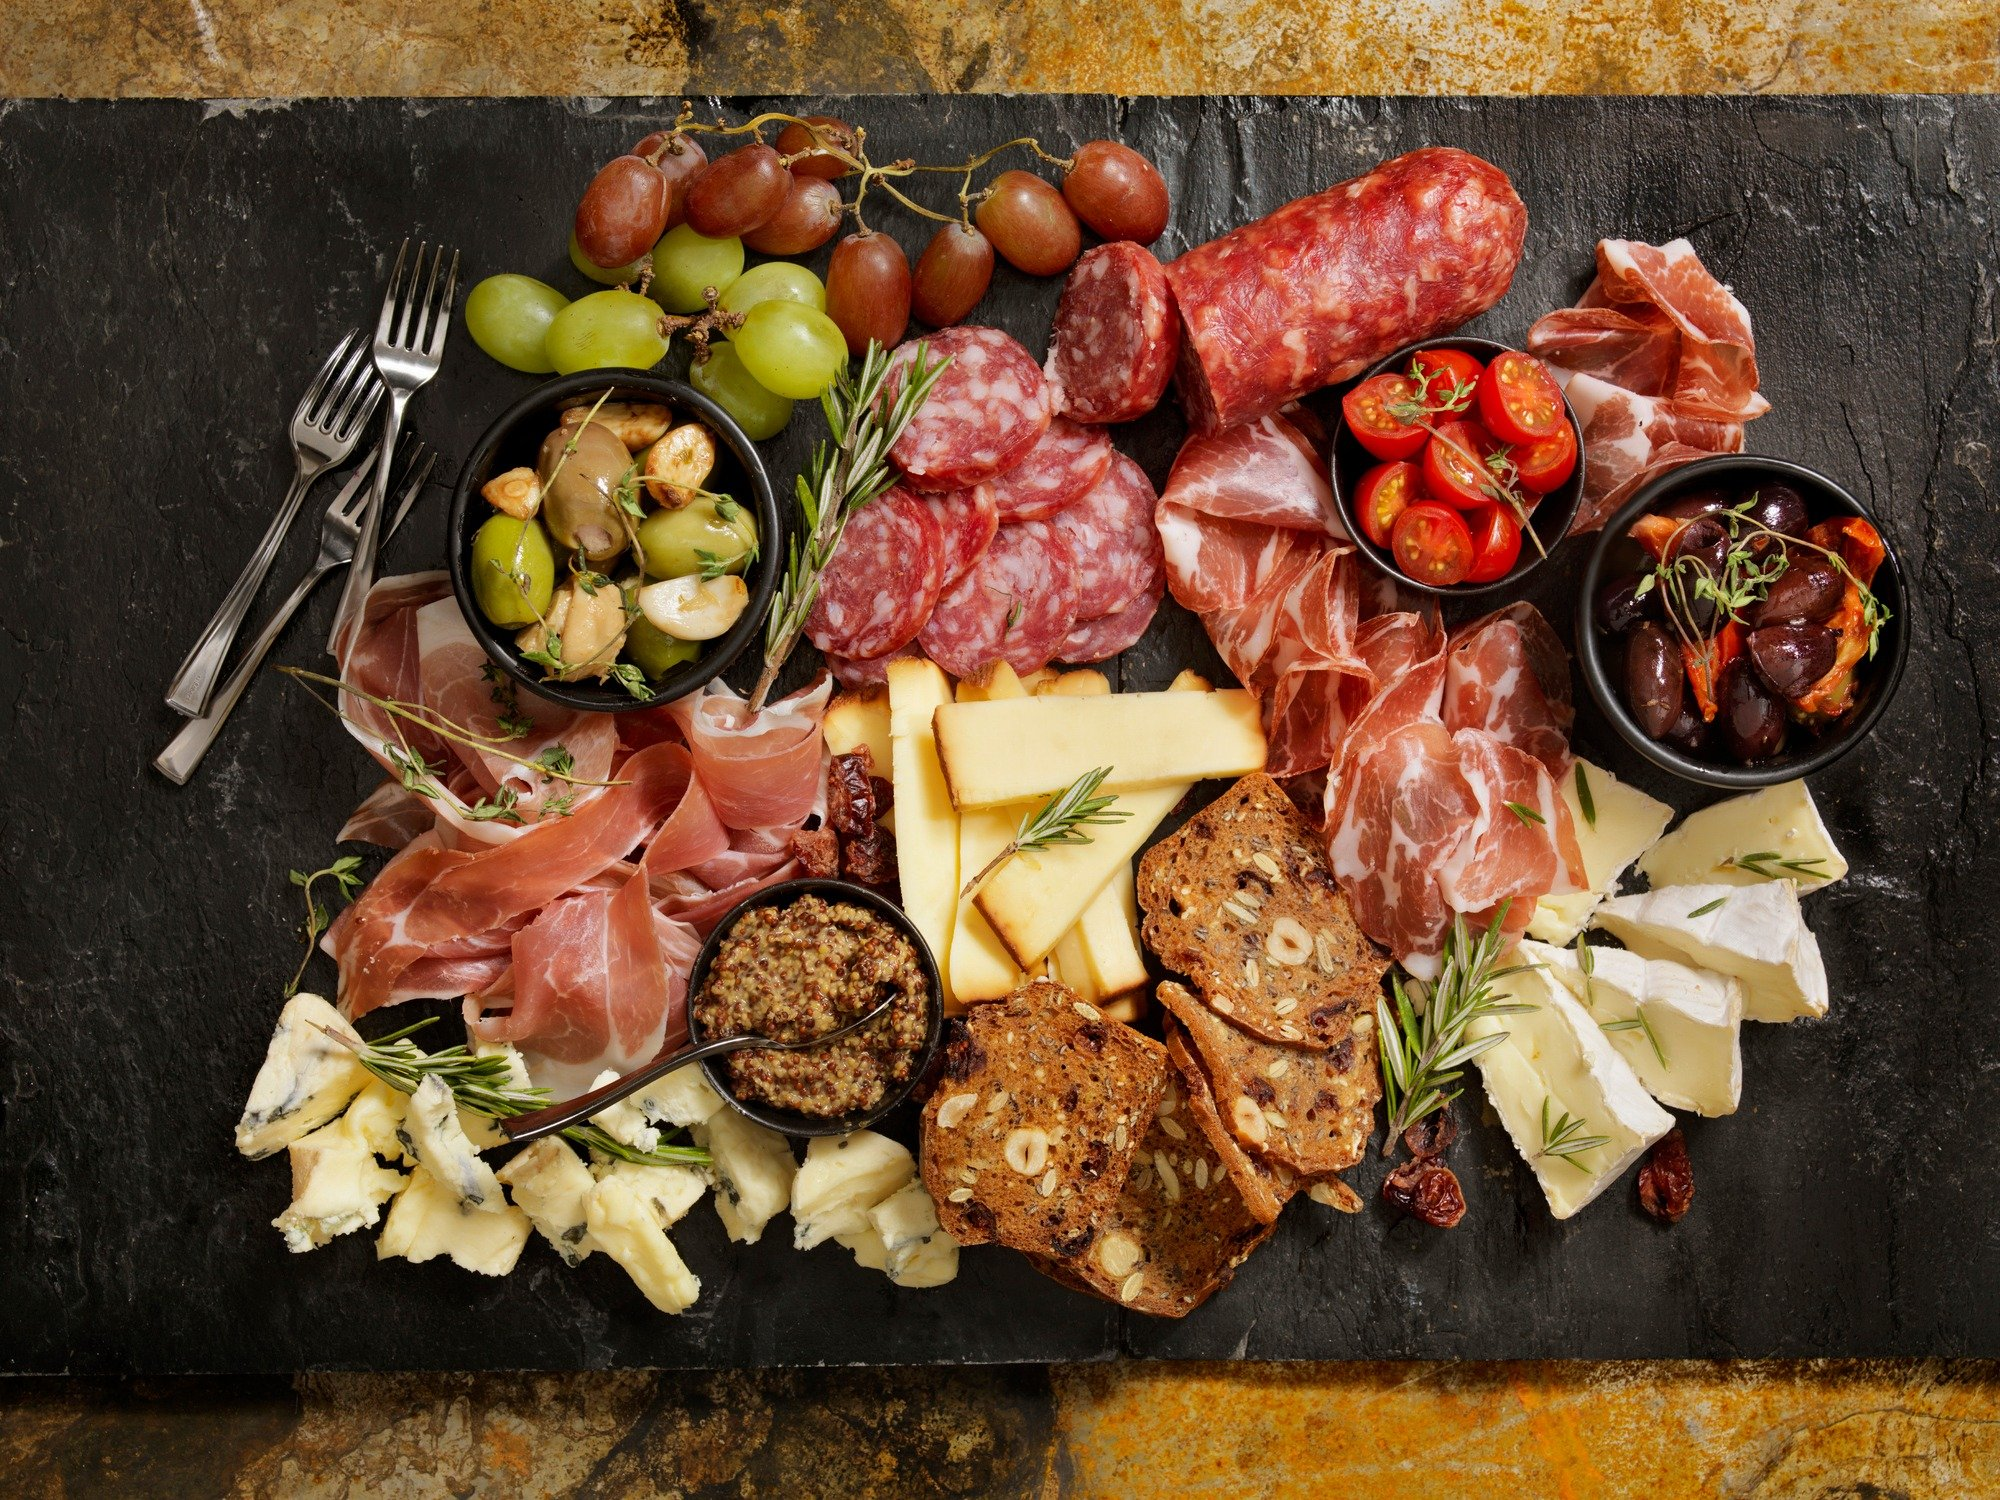 Perhaps it's best to out away those charcuterie boards until after Ramadan. (iStock Photo)